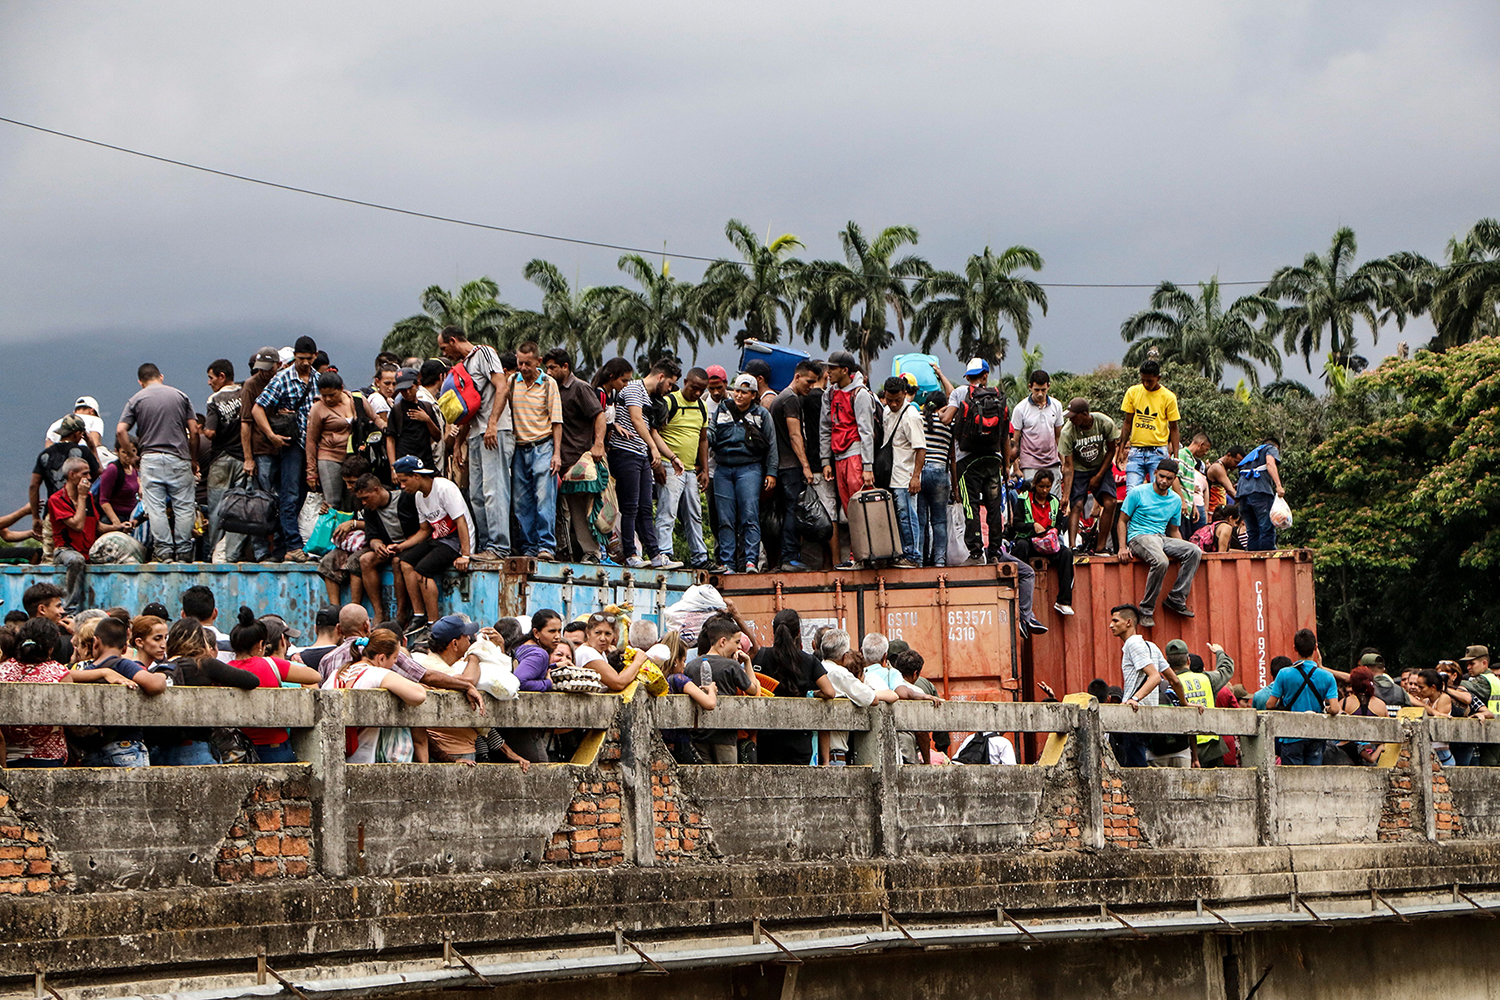 Venezuelans stand atop containers as they attempt to cross the blocked Simon Bolivar international bridge in Cucuta, Colombia, at the border with Venezuela on April 2. SCHNEYDER MENDOZA/AFP/Getty Images